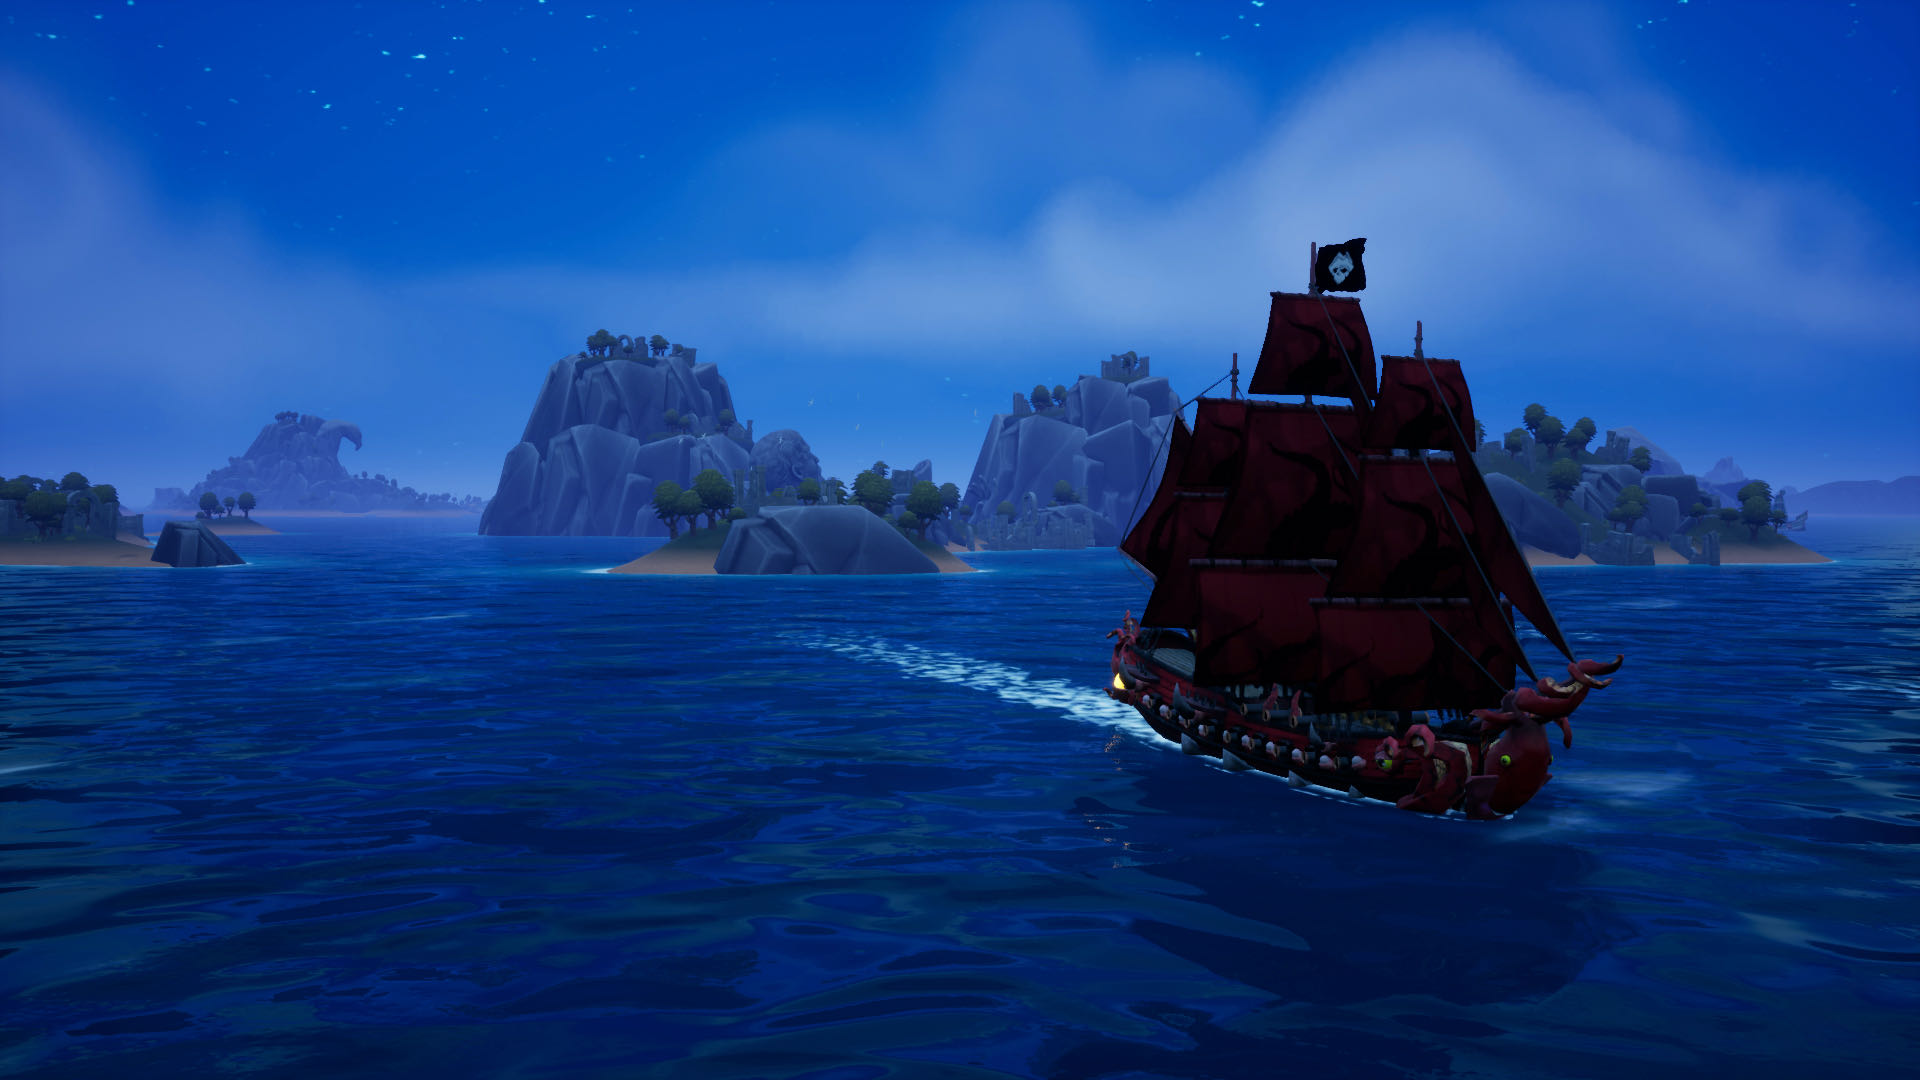 A nighttime screenshot from King of Seas, your silhouetted ship sailing away from a group of islands, towards the camera.